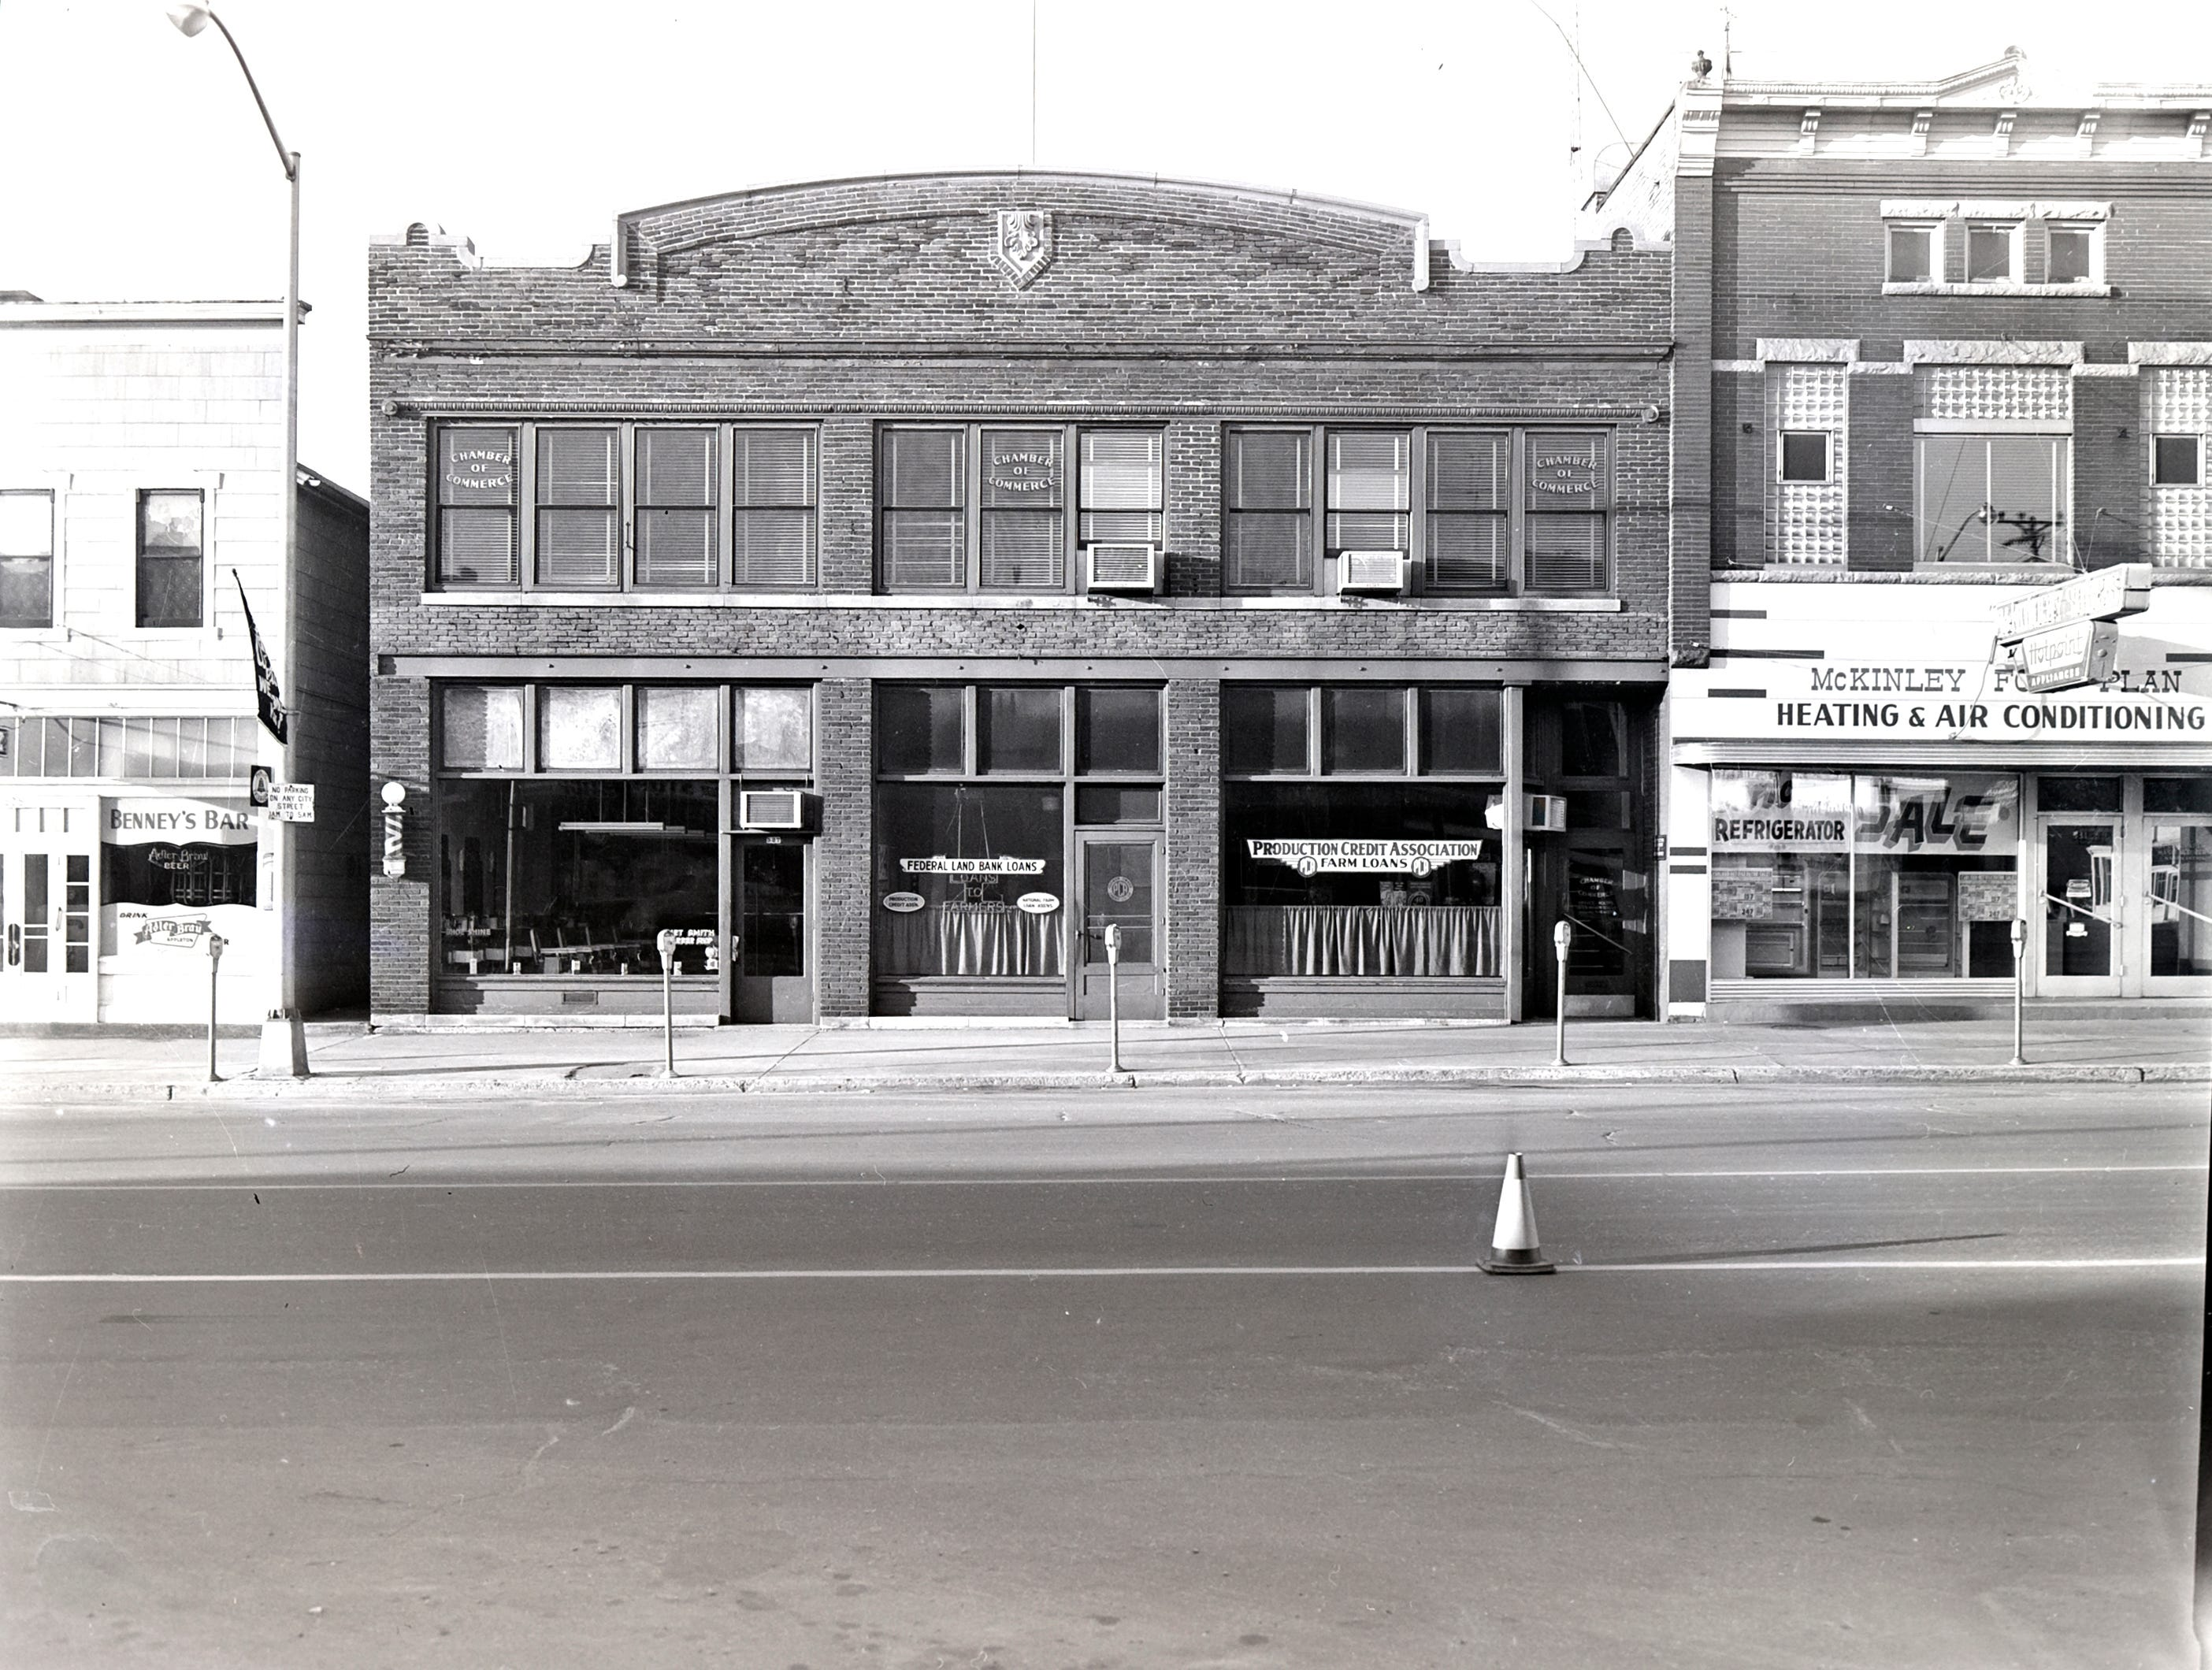 1957 Downtown Appleton. 500 West block on the south side of College Avenue: Benney's Bar. Production Credit Association / Chamber of Commerce. McKinley Food Plan Heating & Air Conditioning. Post-Crescent photo by staff.